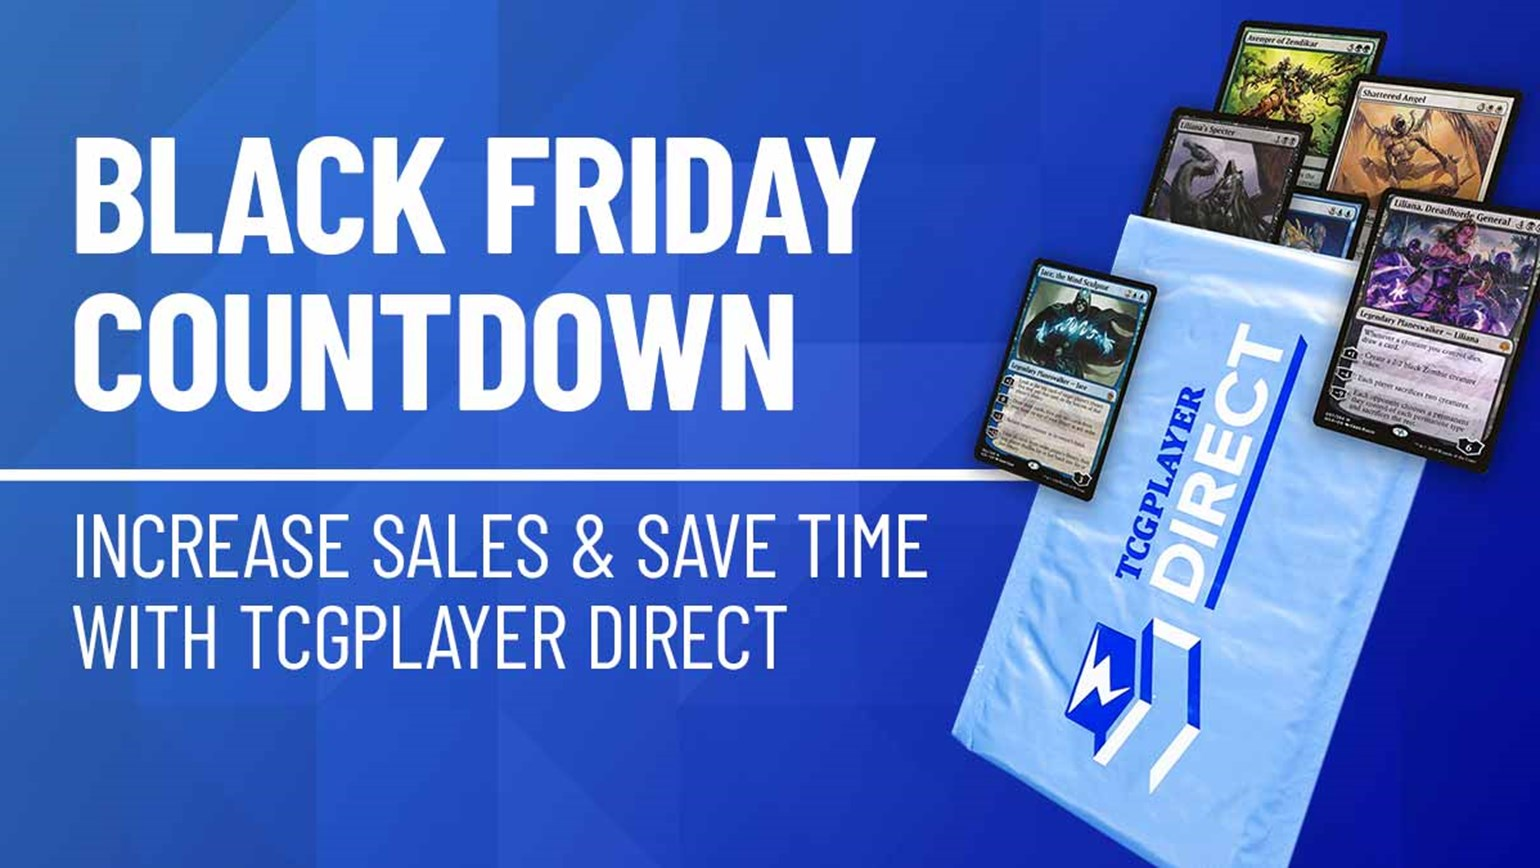 Black Friday Countdown: Increase Sales and Save Time with TCGplayer Direct